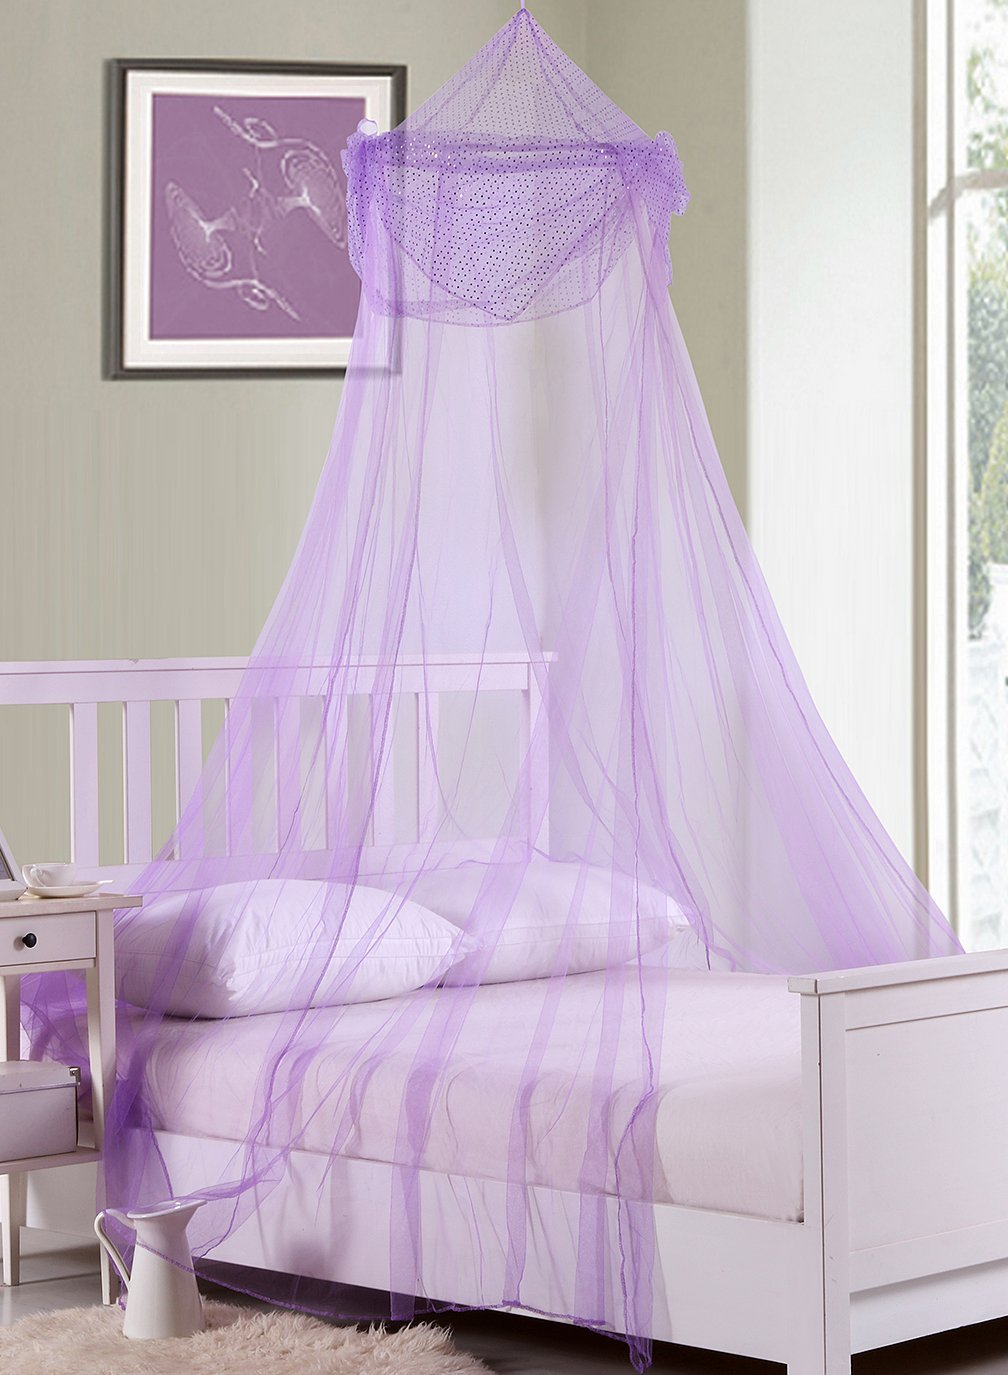 Fantasy Kids Raisinette Collapsible Hoop Sheer Bed Canopy, One Size, Purple Epoch Hometex inc. 5008299